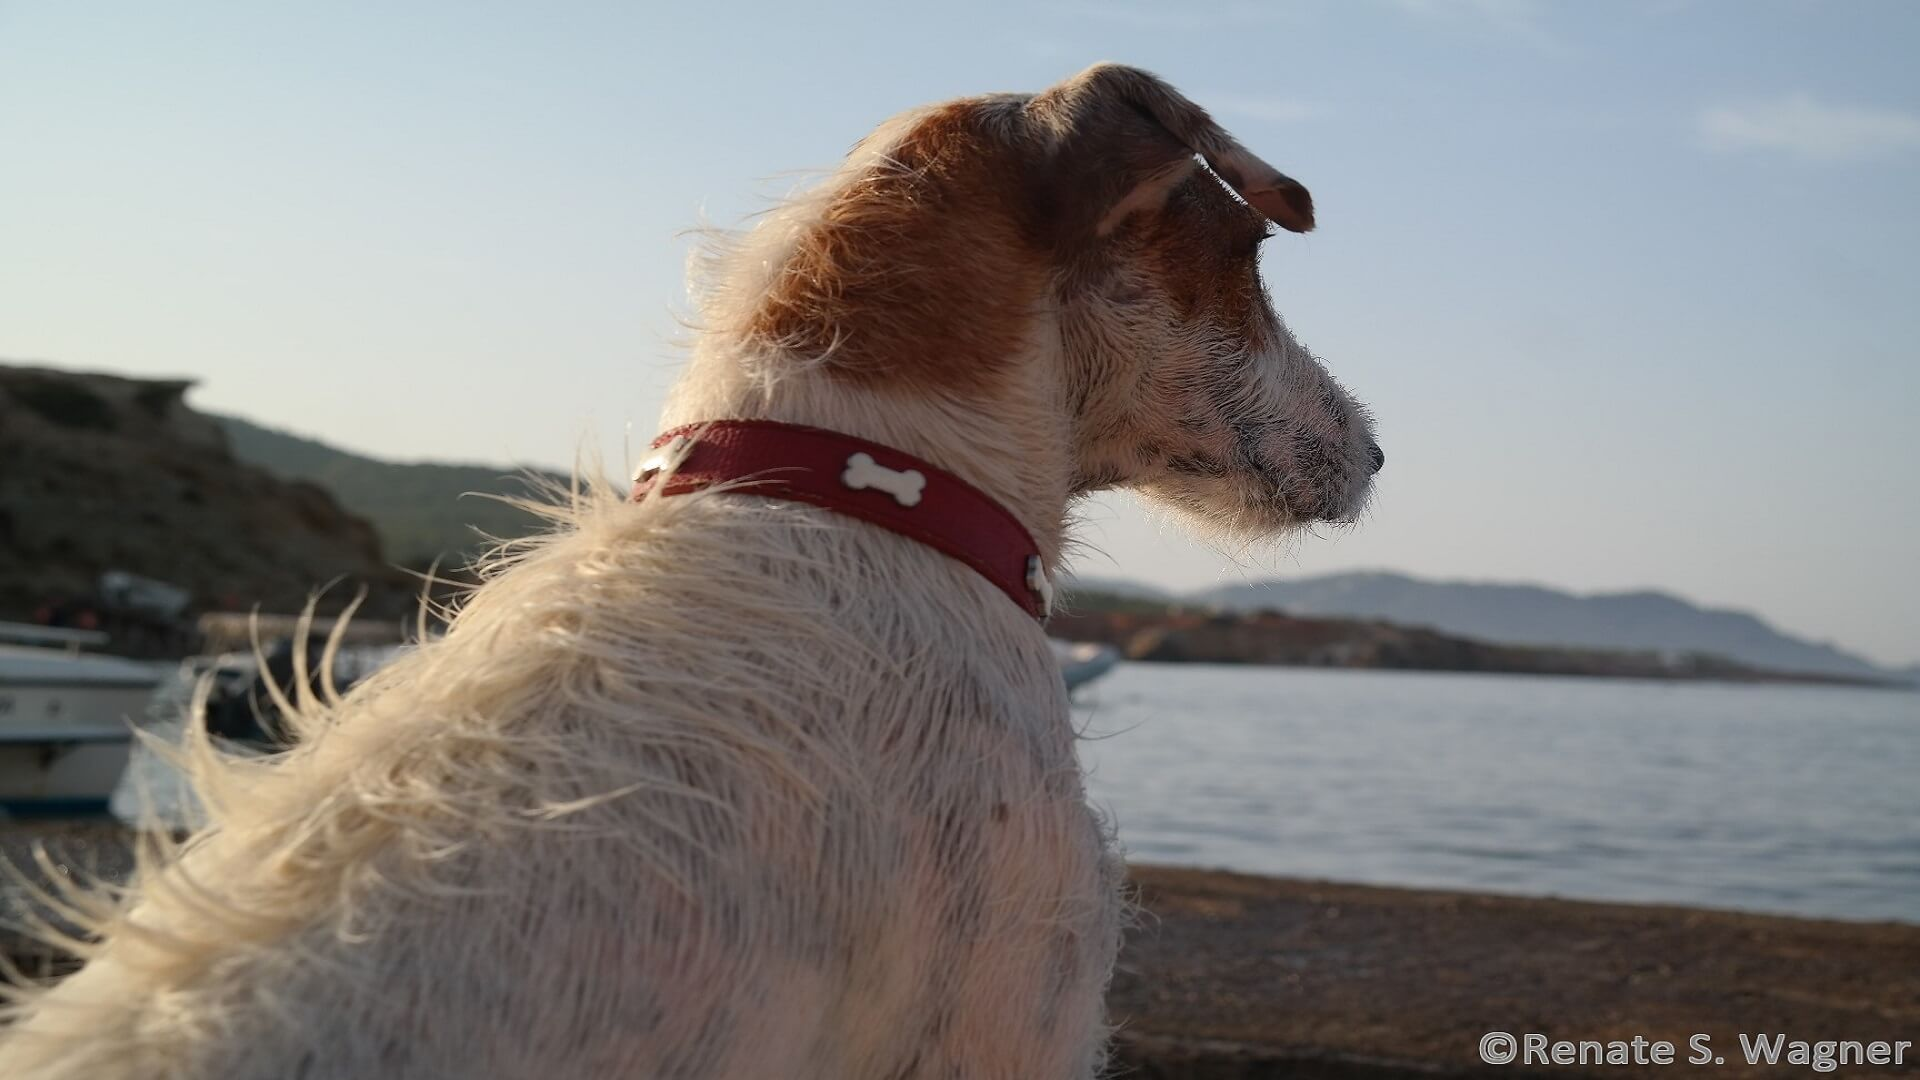 Mallorca's airport has a heart for four-legged friends!